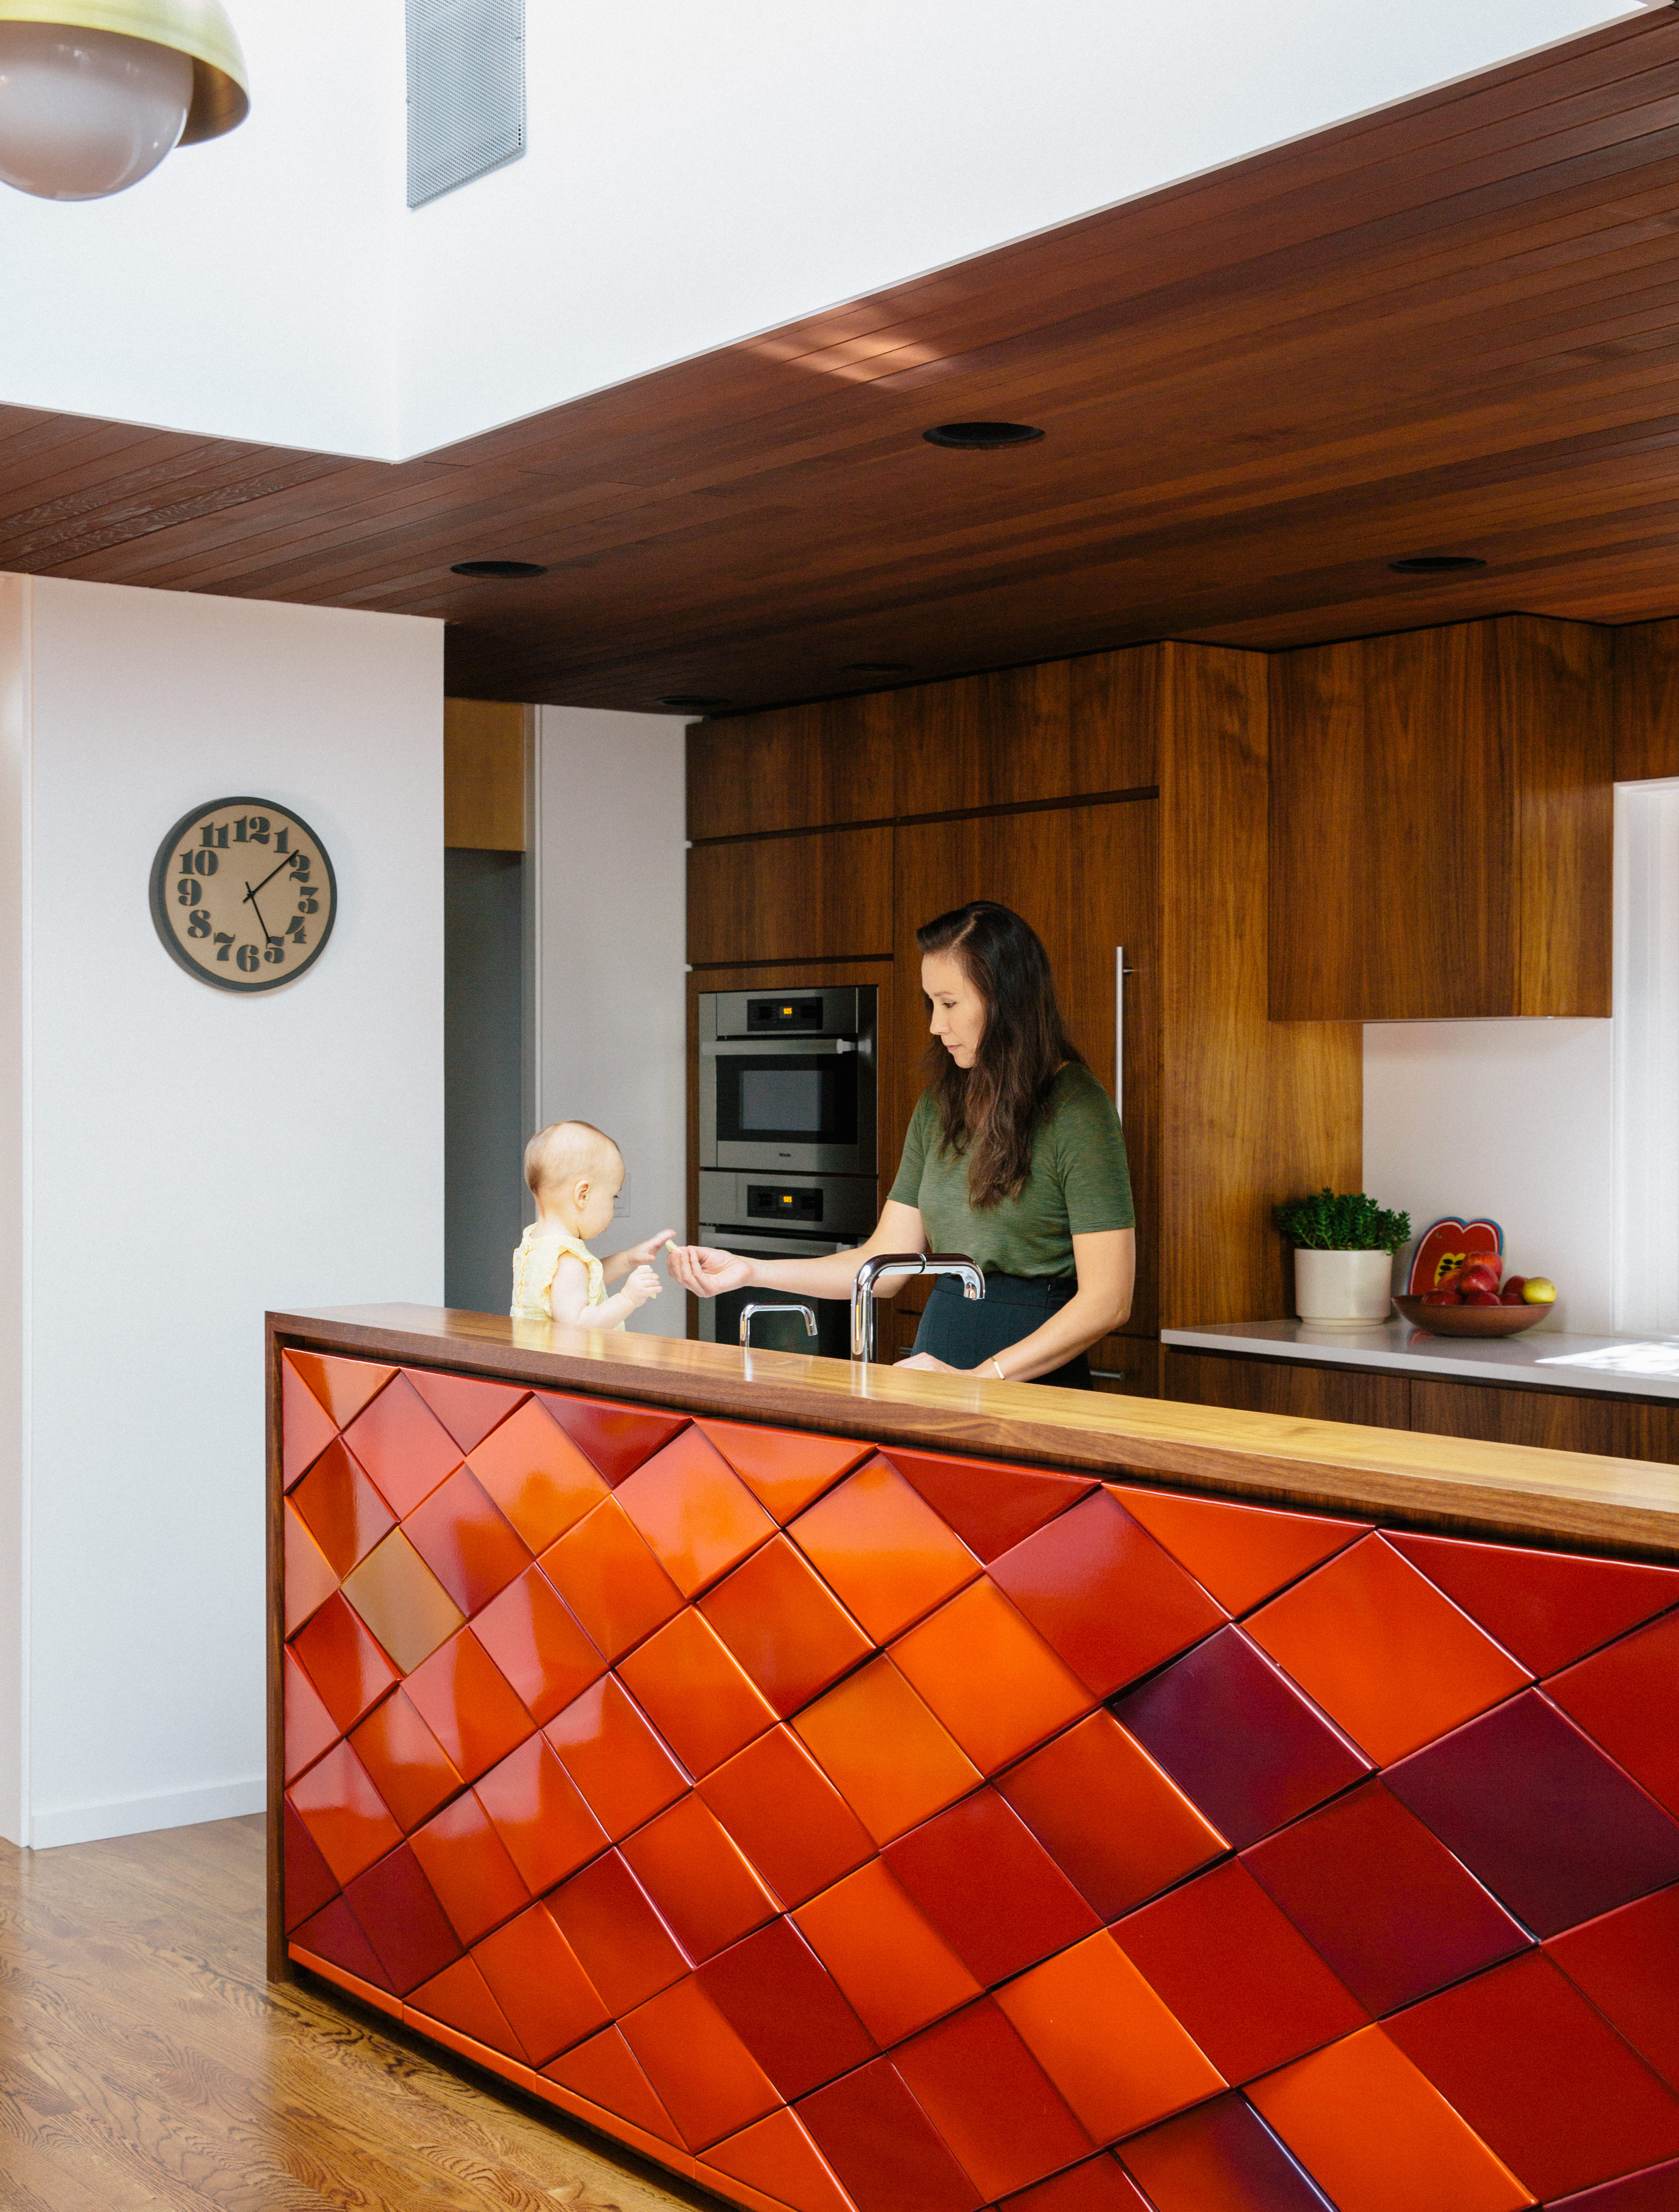 Red tiles brighten up the kitchen and provides views throughout the house.